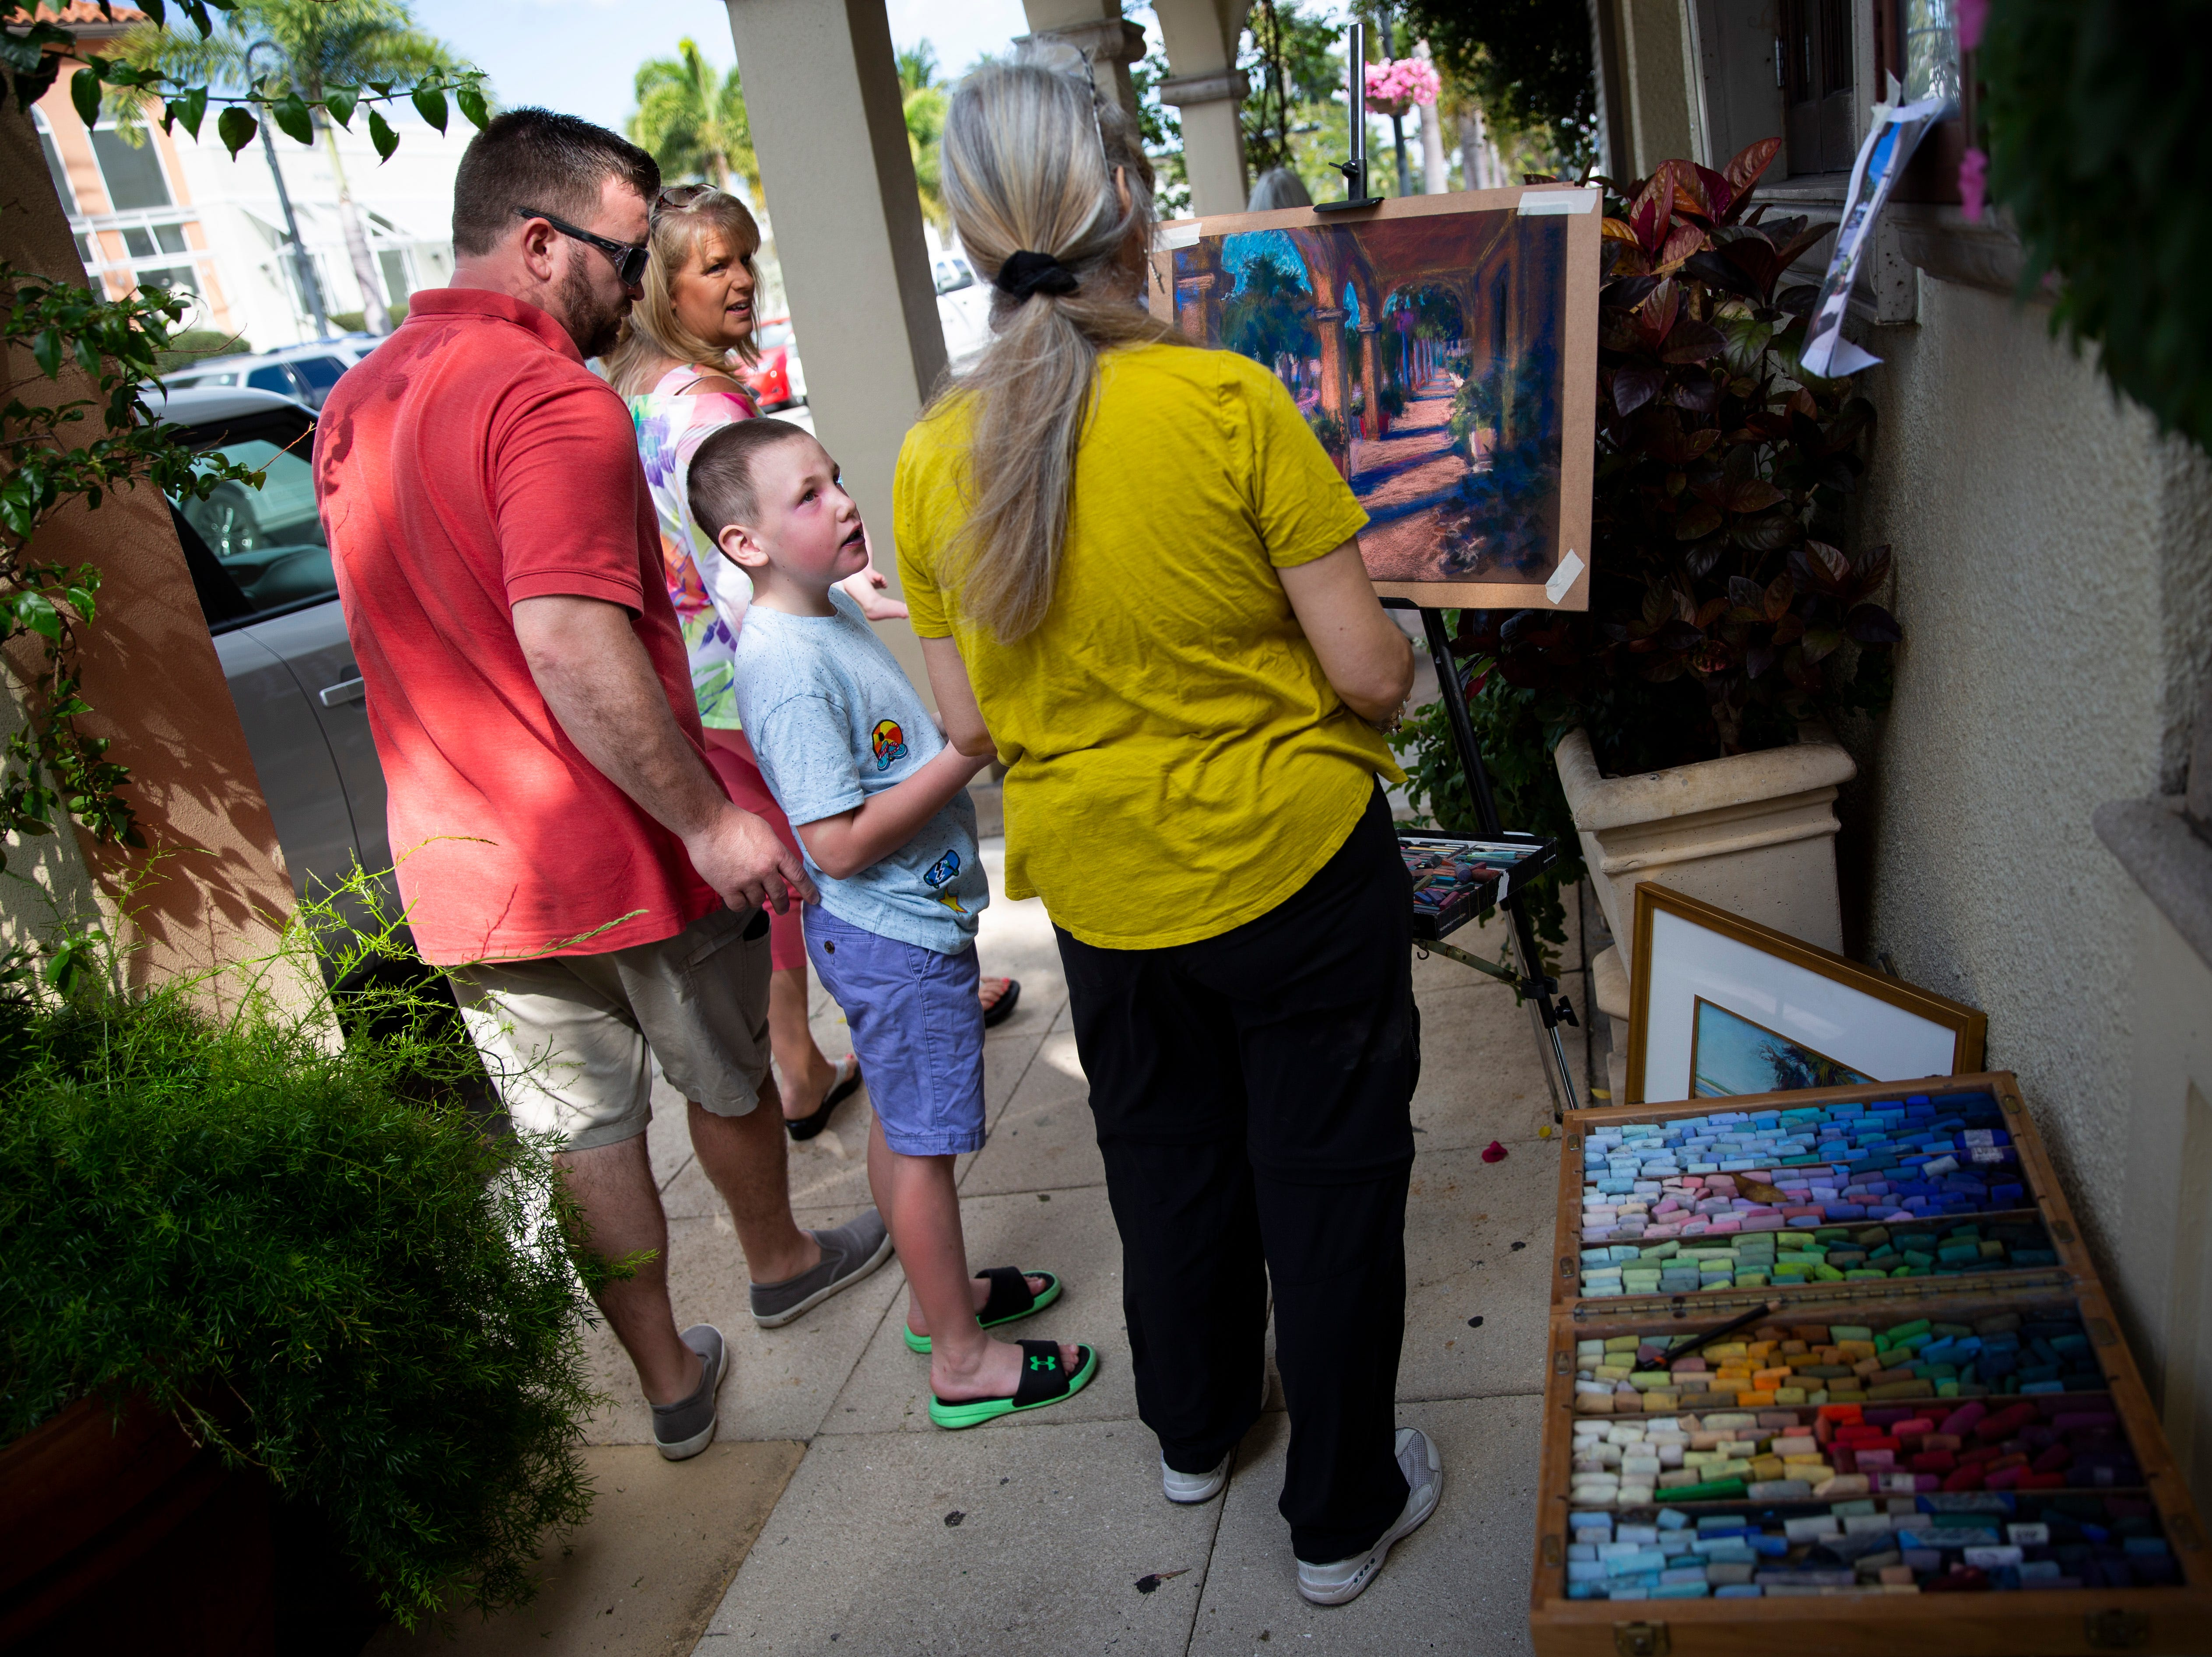 """Dawson George, 7, stops to talk to Cheri Dunnigan as she works on her chalk pastel drawing during the annual Third on Canvas event on Third Street South in Naples on Sunday, Feb. 17, 2019. """"How'd you do that?"""" asked Dawson, who was very impressed by the artwork."""